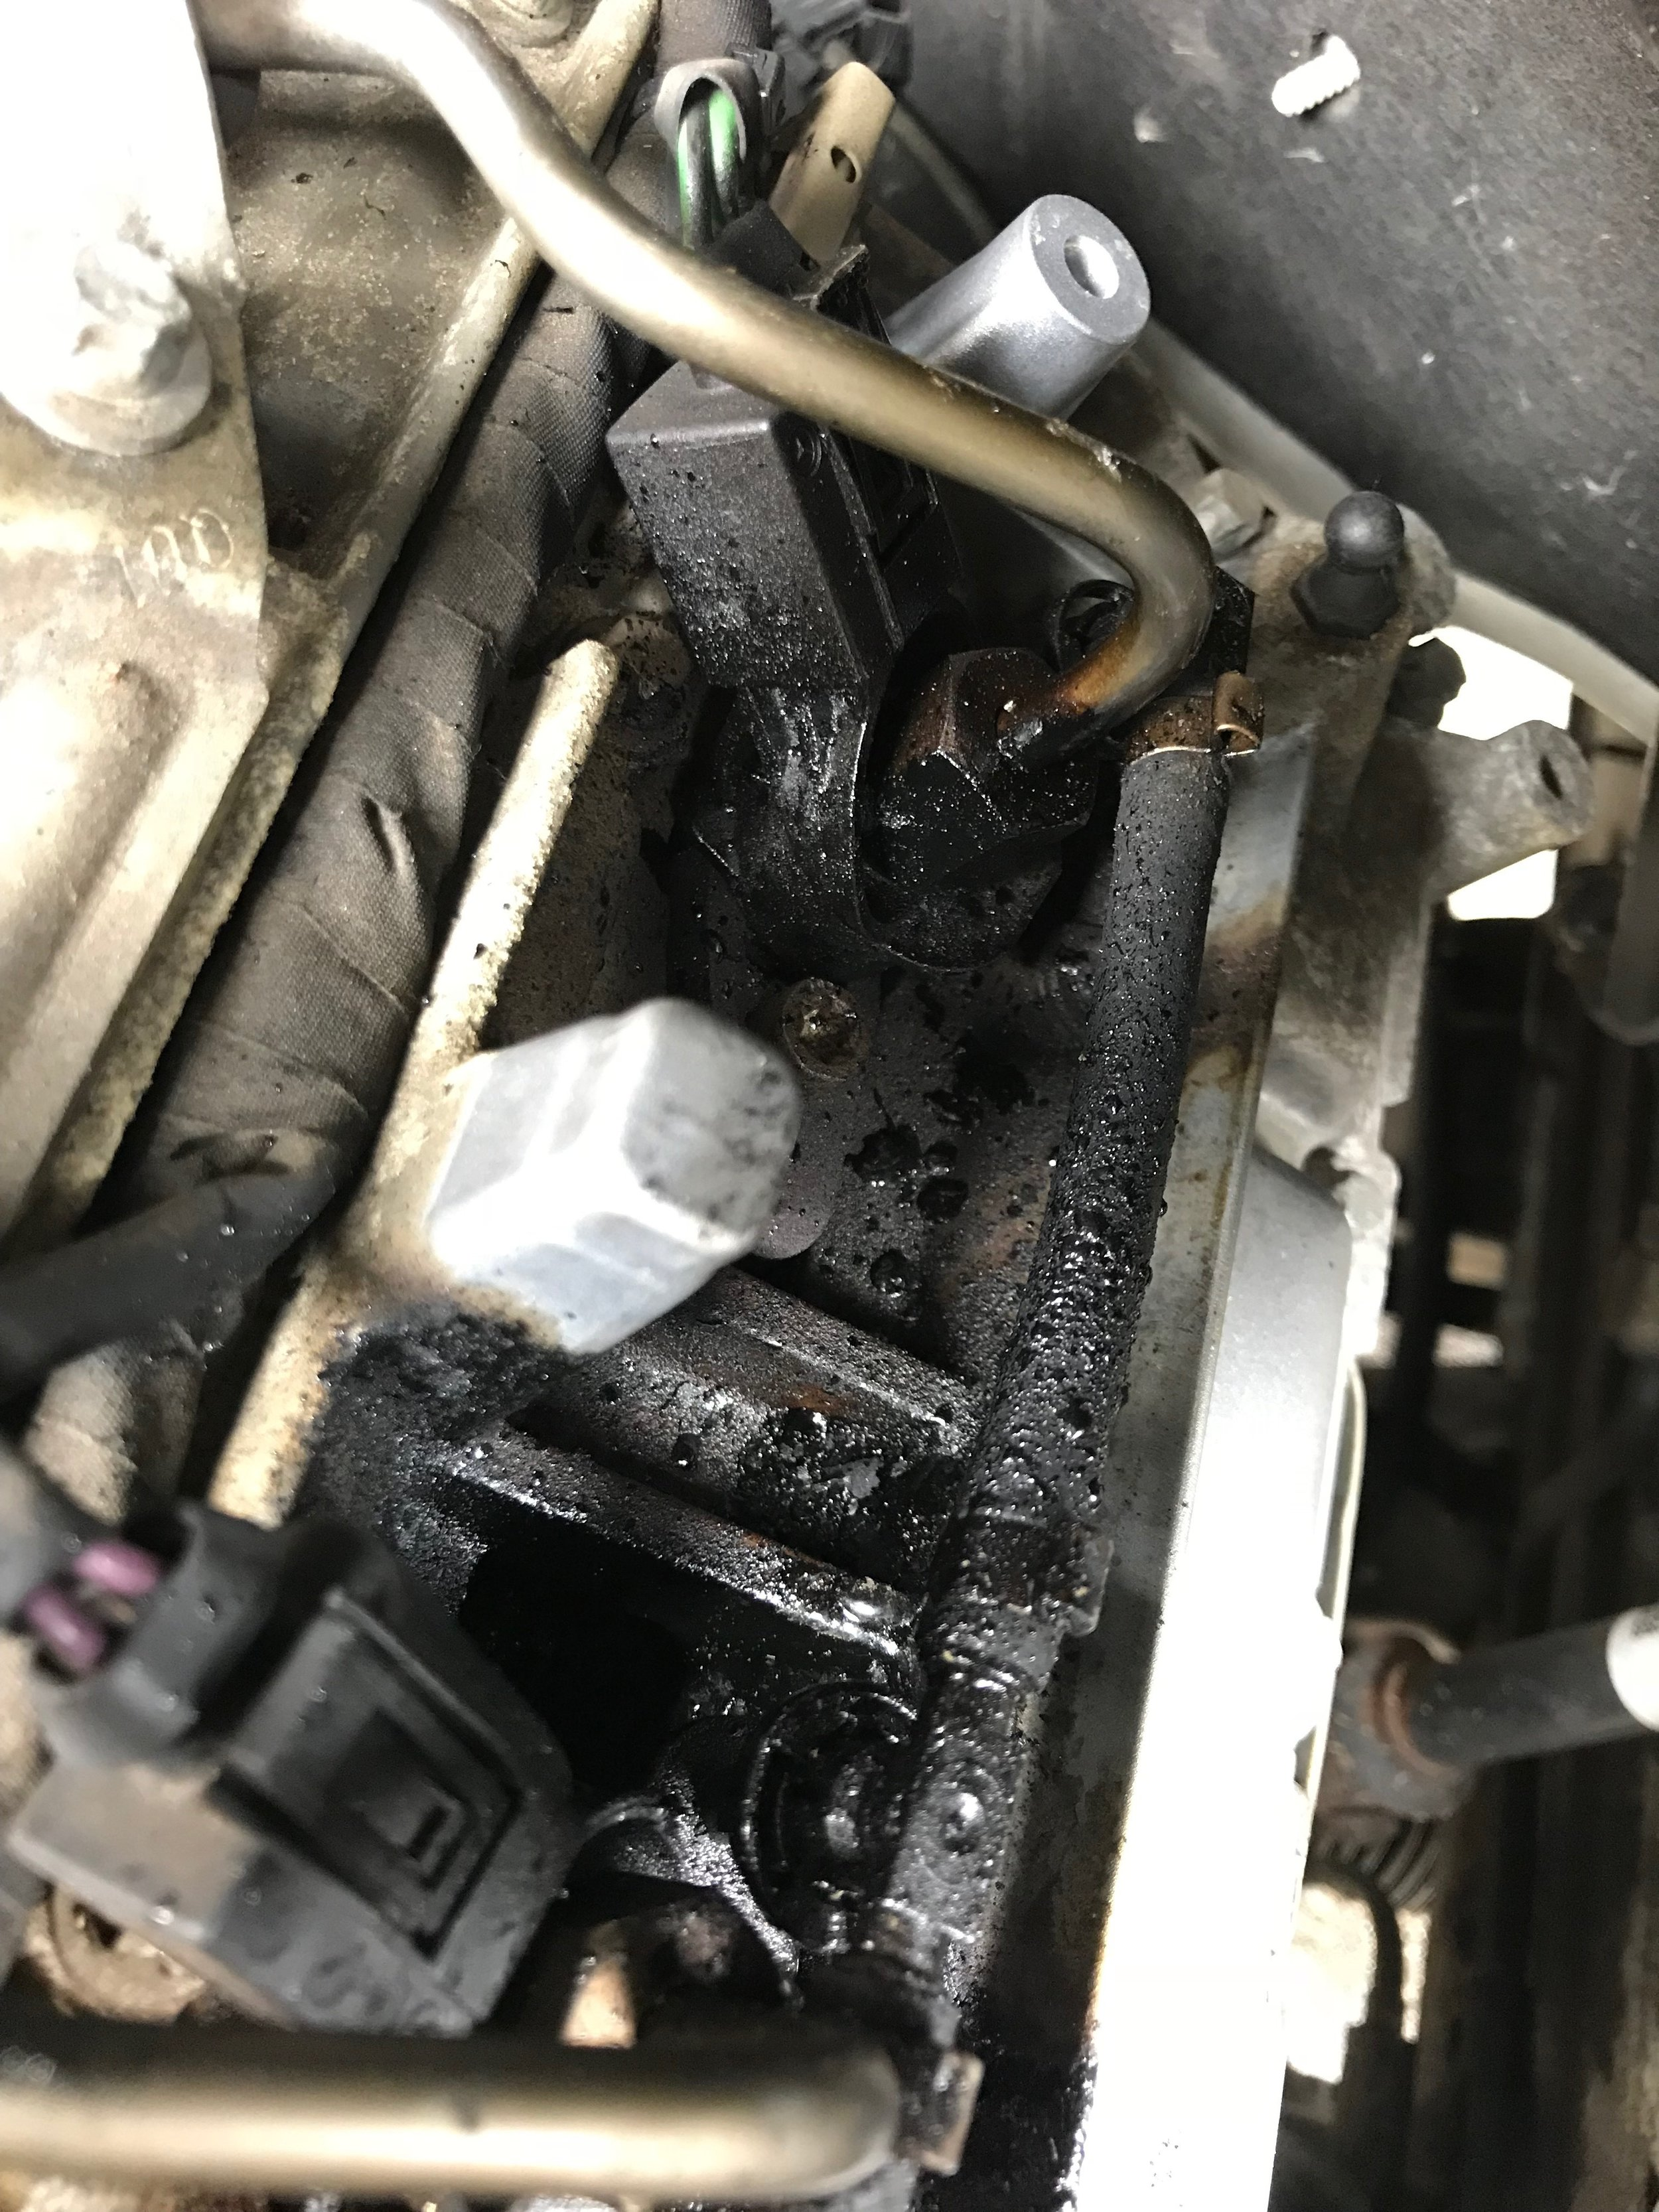 The black gunk was apparent around the injectors and along with the chuffing, we were certain it was Black Death.